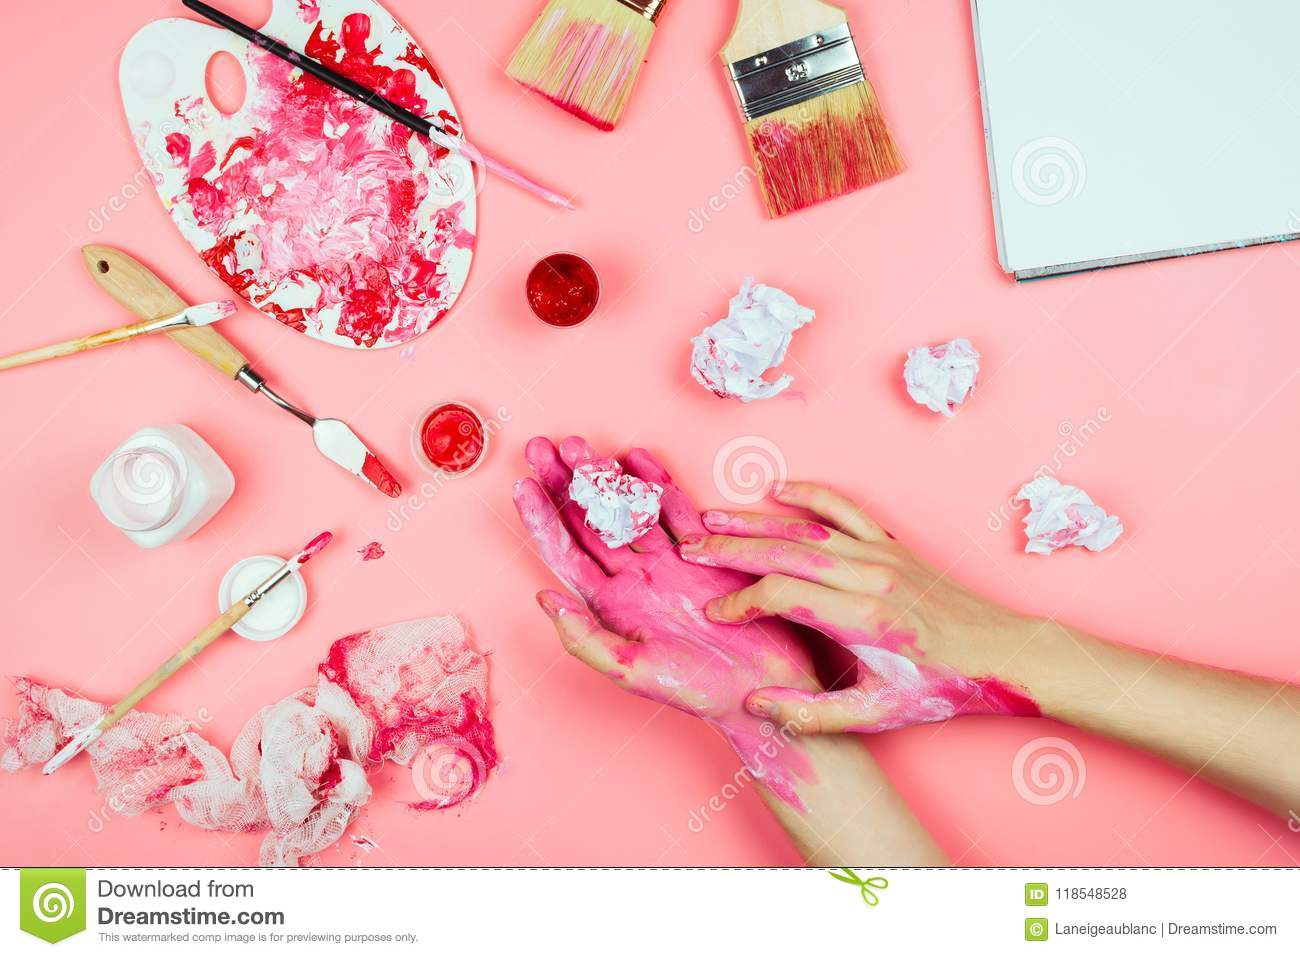 Flatlay With Woman S Hands Covered In Paint Holding Brush